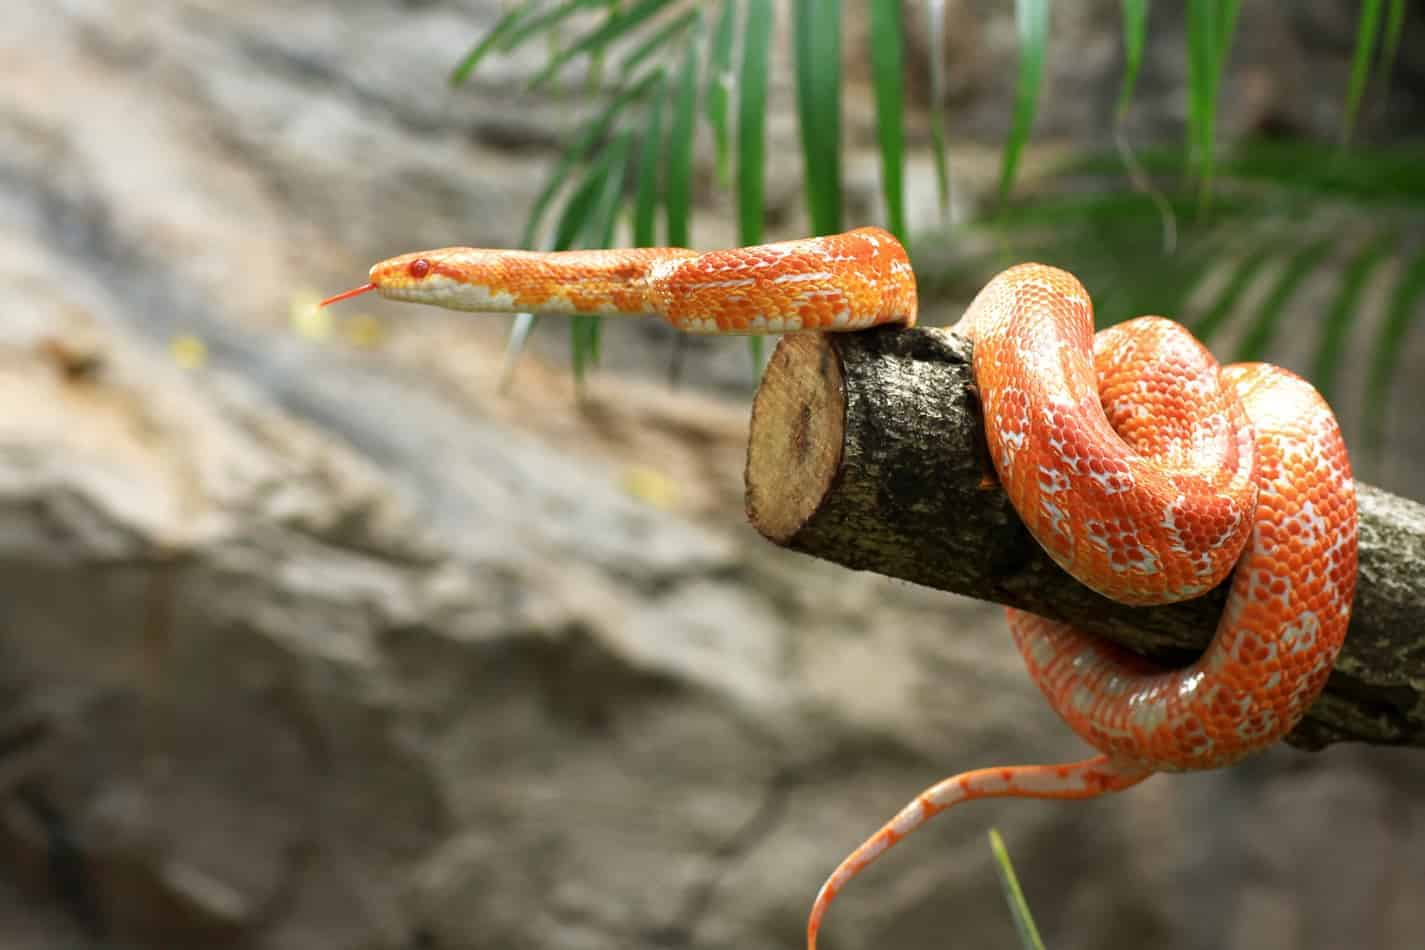 The Florida Corn Snake: 11 Interesting Facts